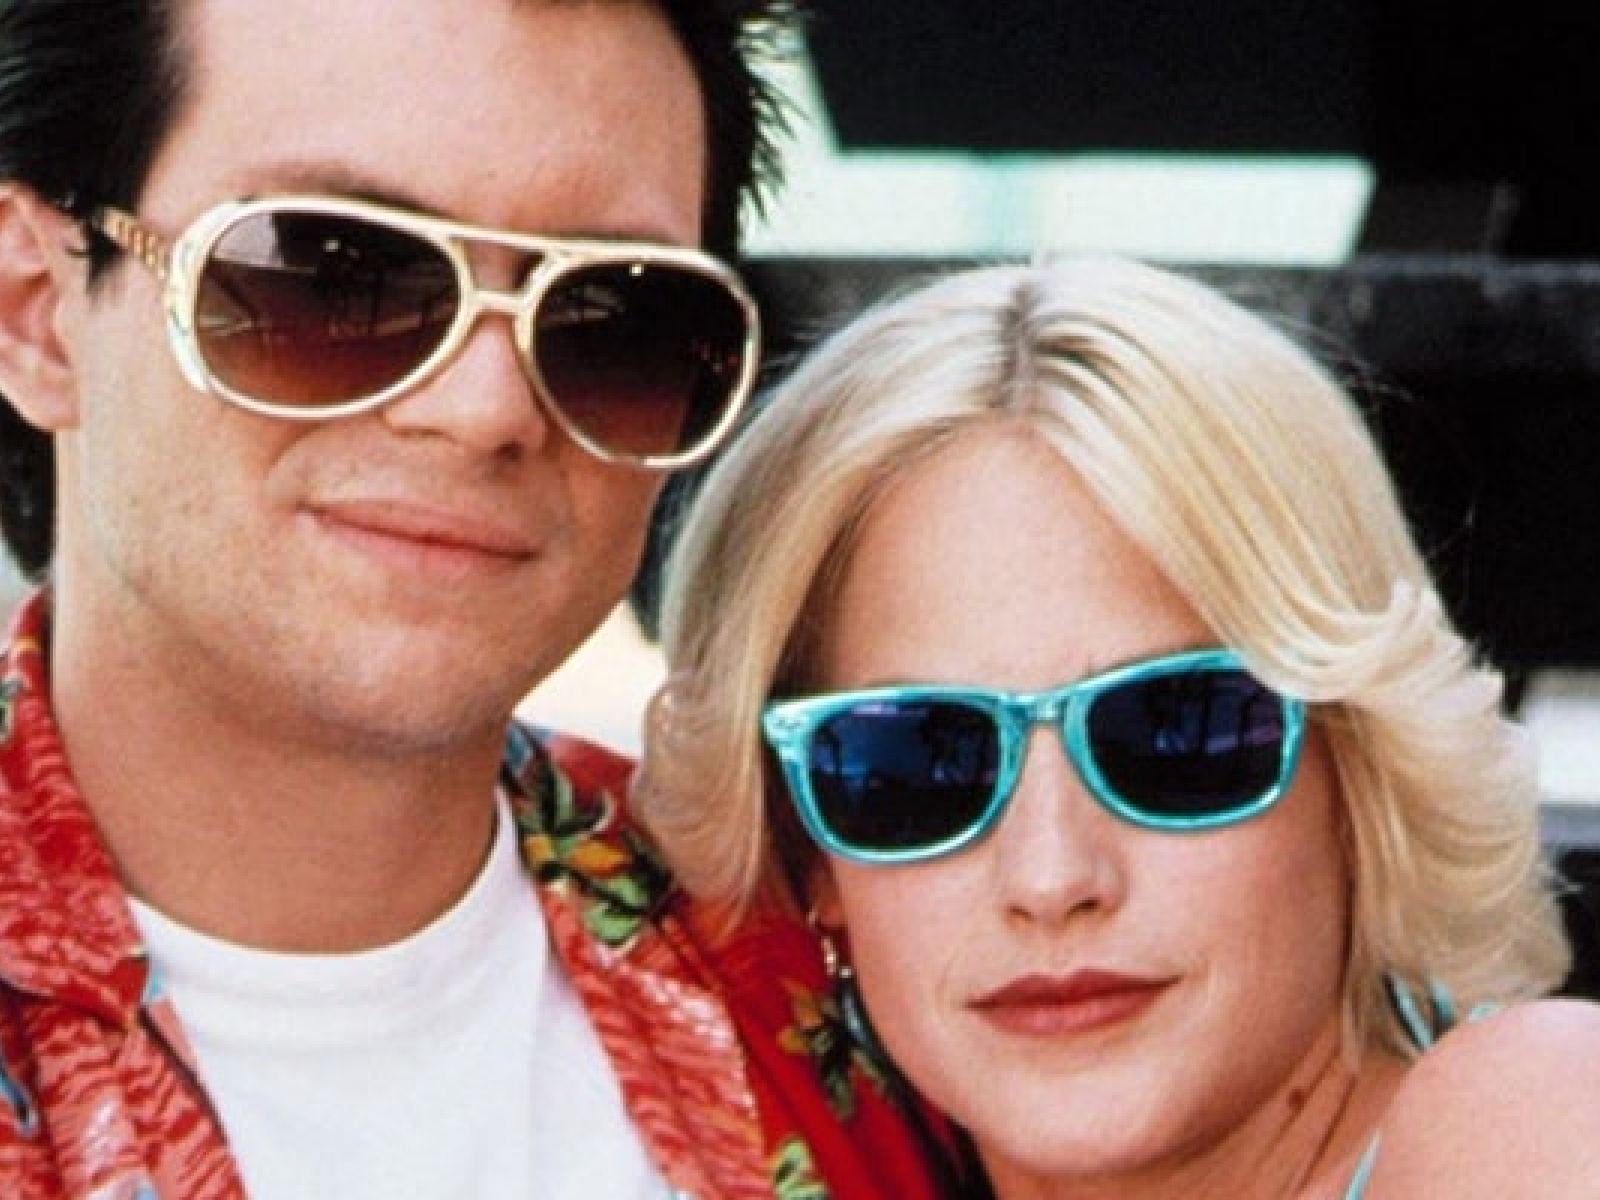 Main image for event titled TRUE ROMANCE Secret Movie Club Cult Classic Night @Electric Dusk Drive-In